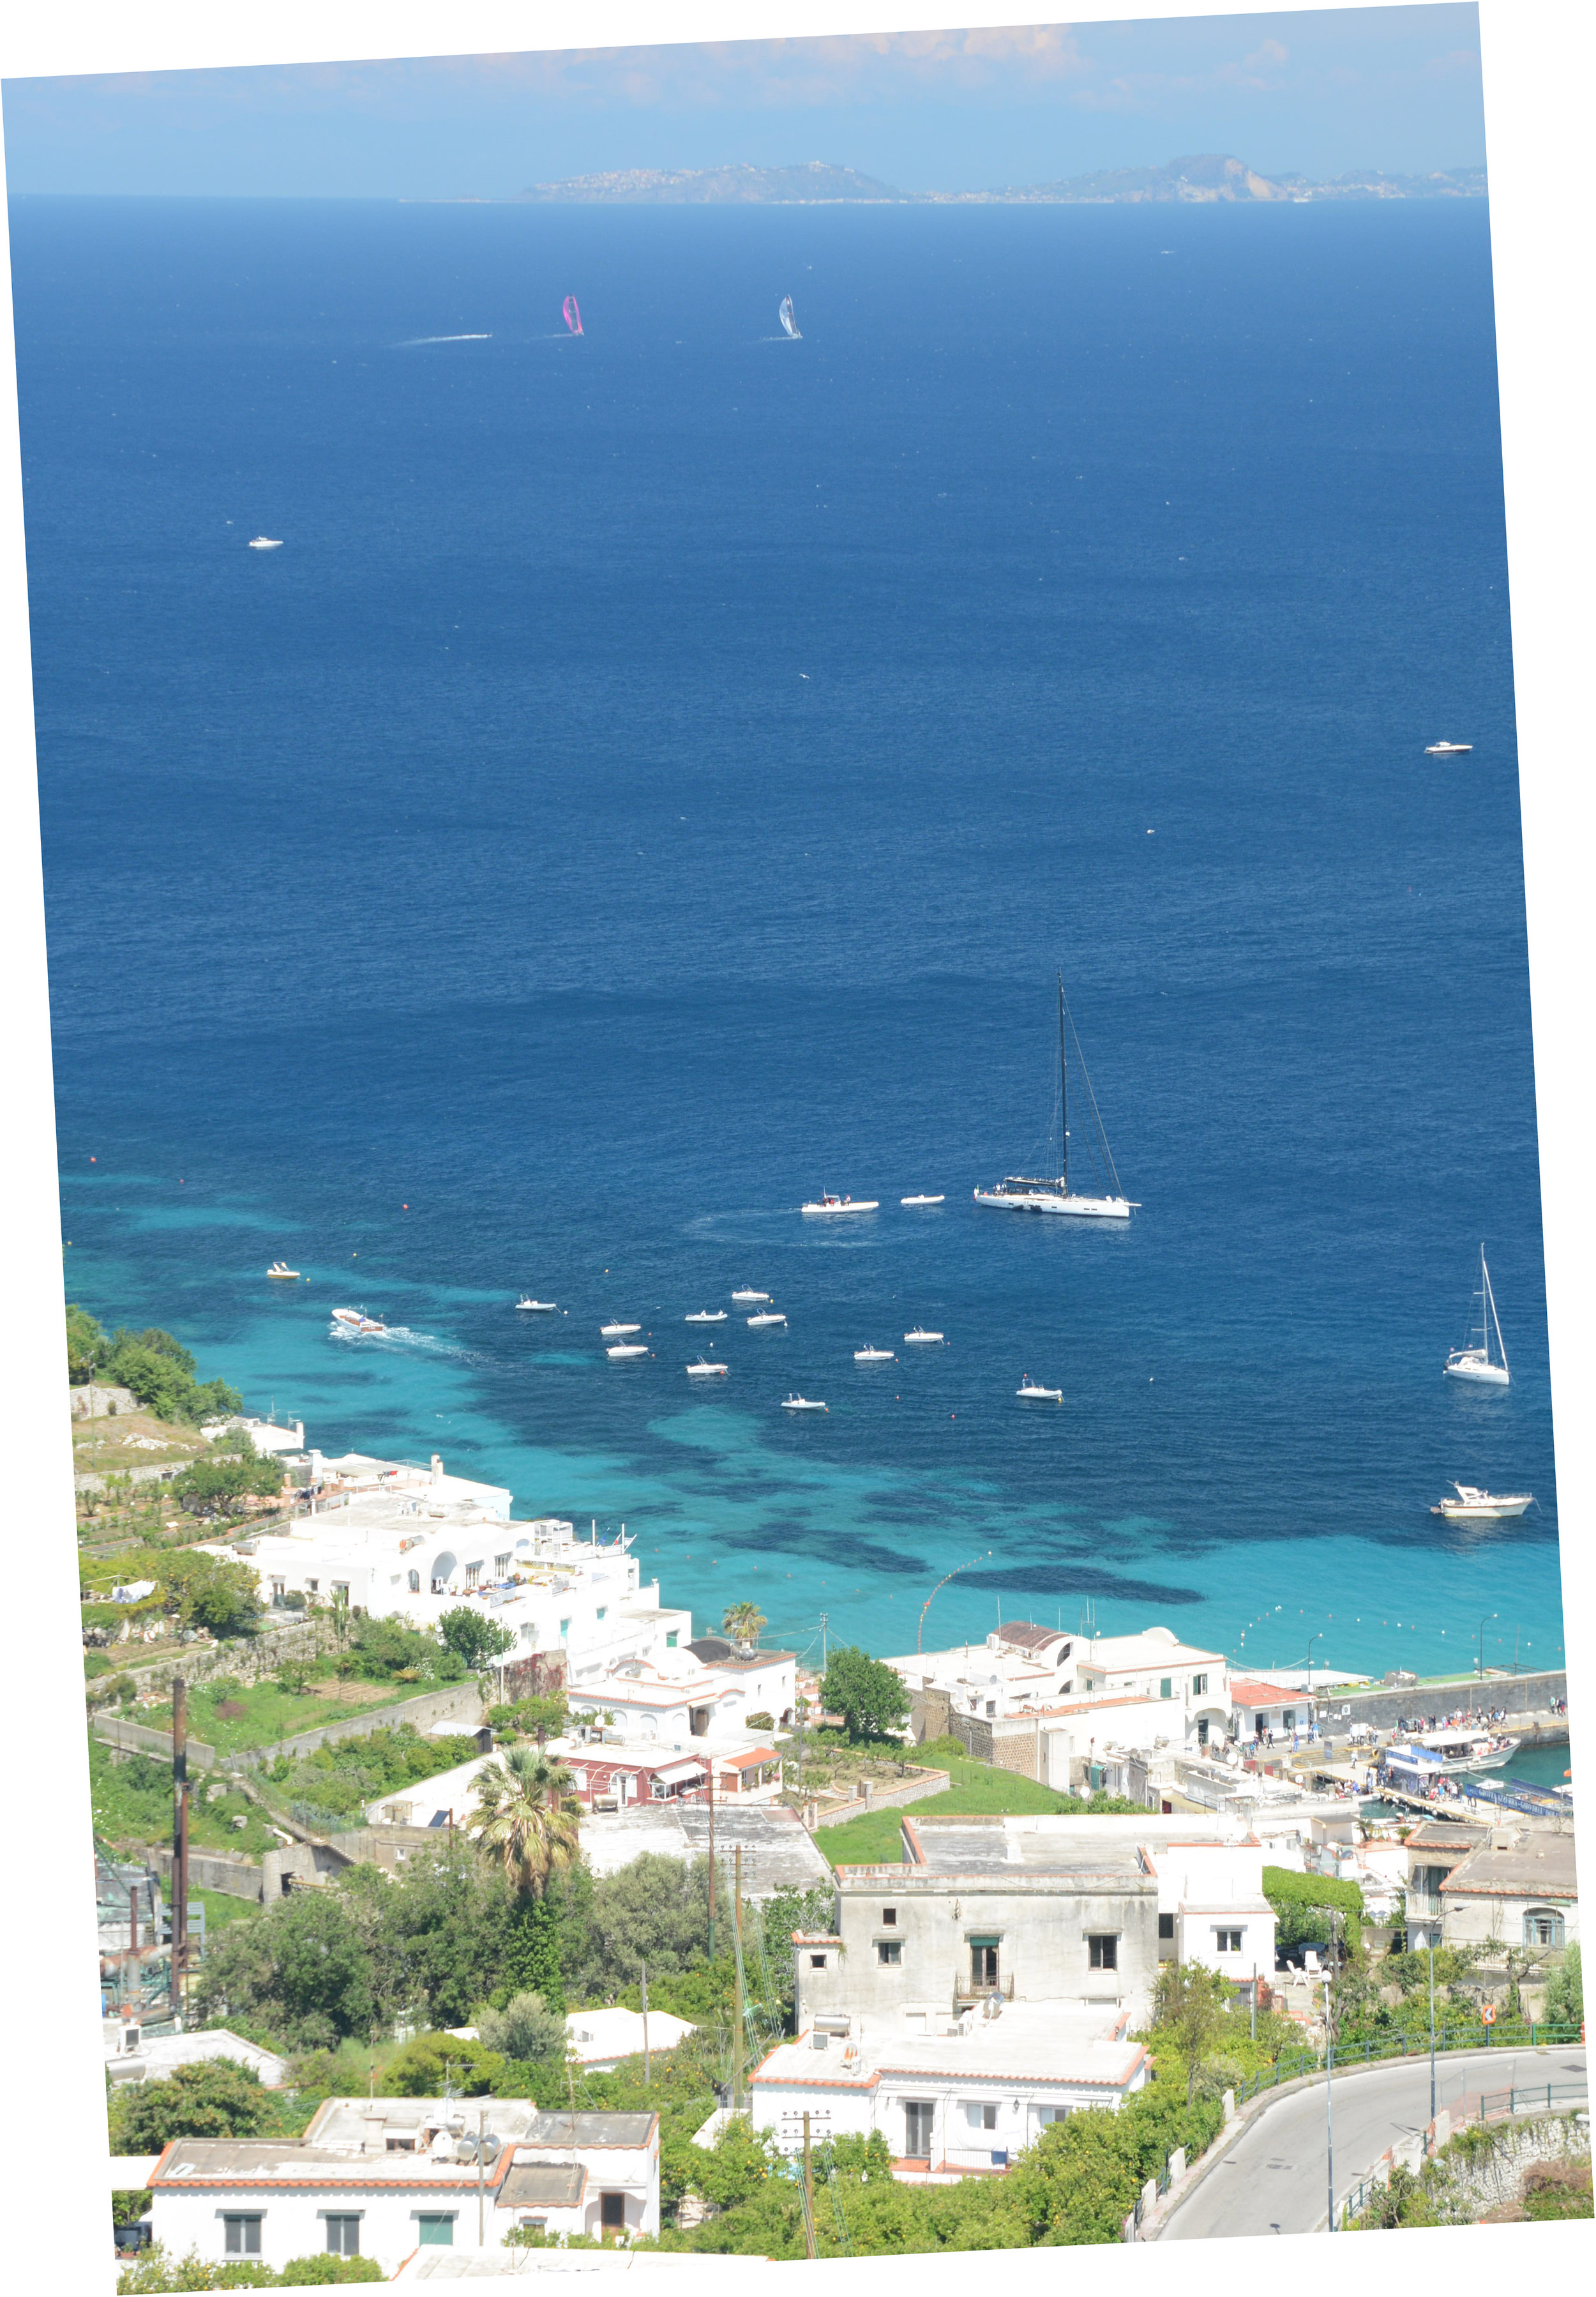 The harbor at Capri and the Bay of Naples beyond